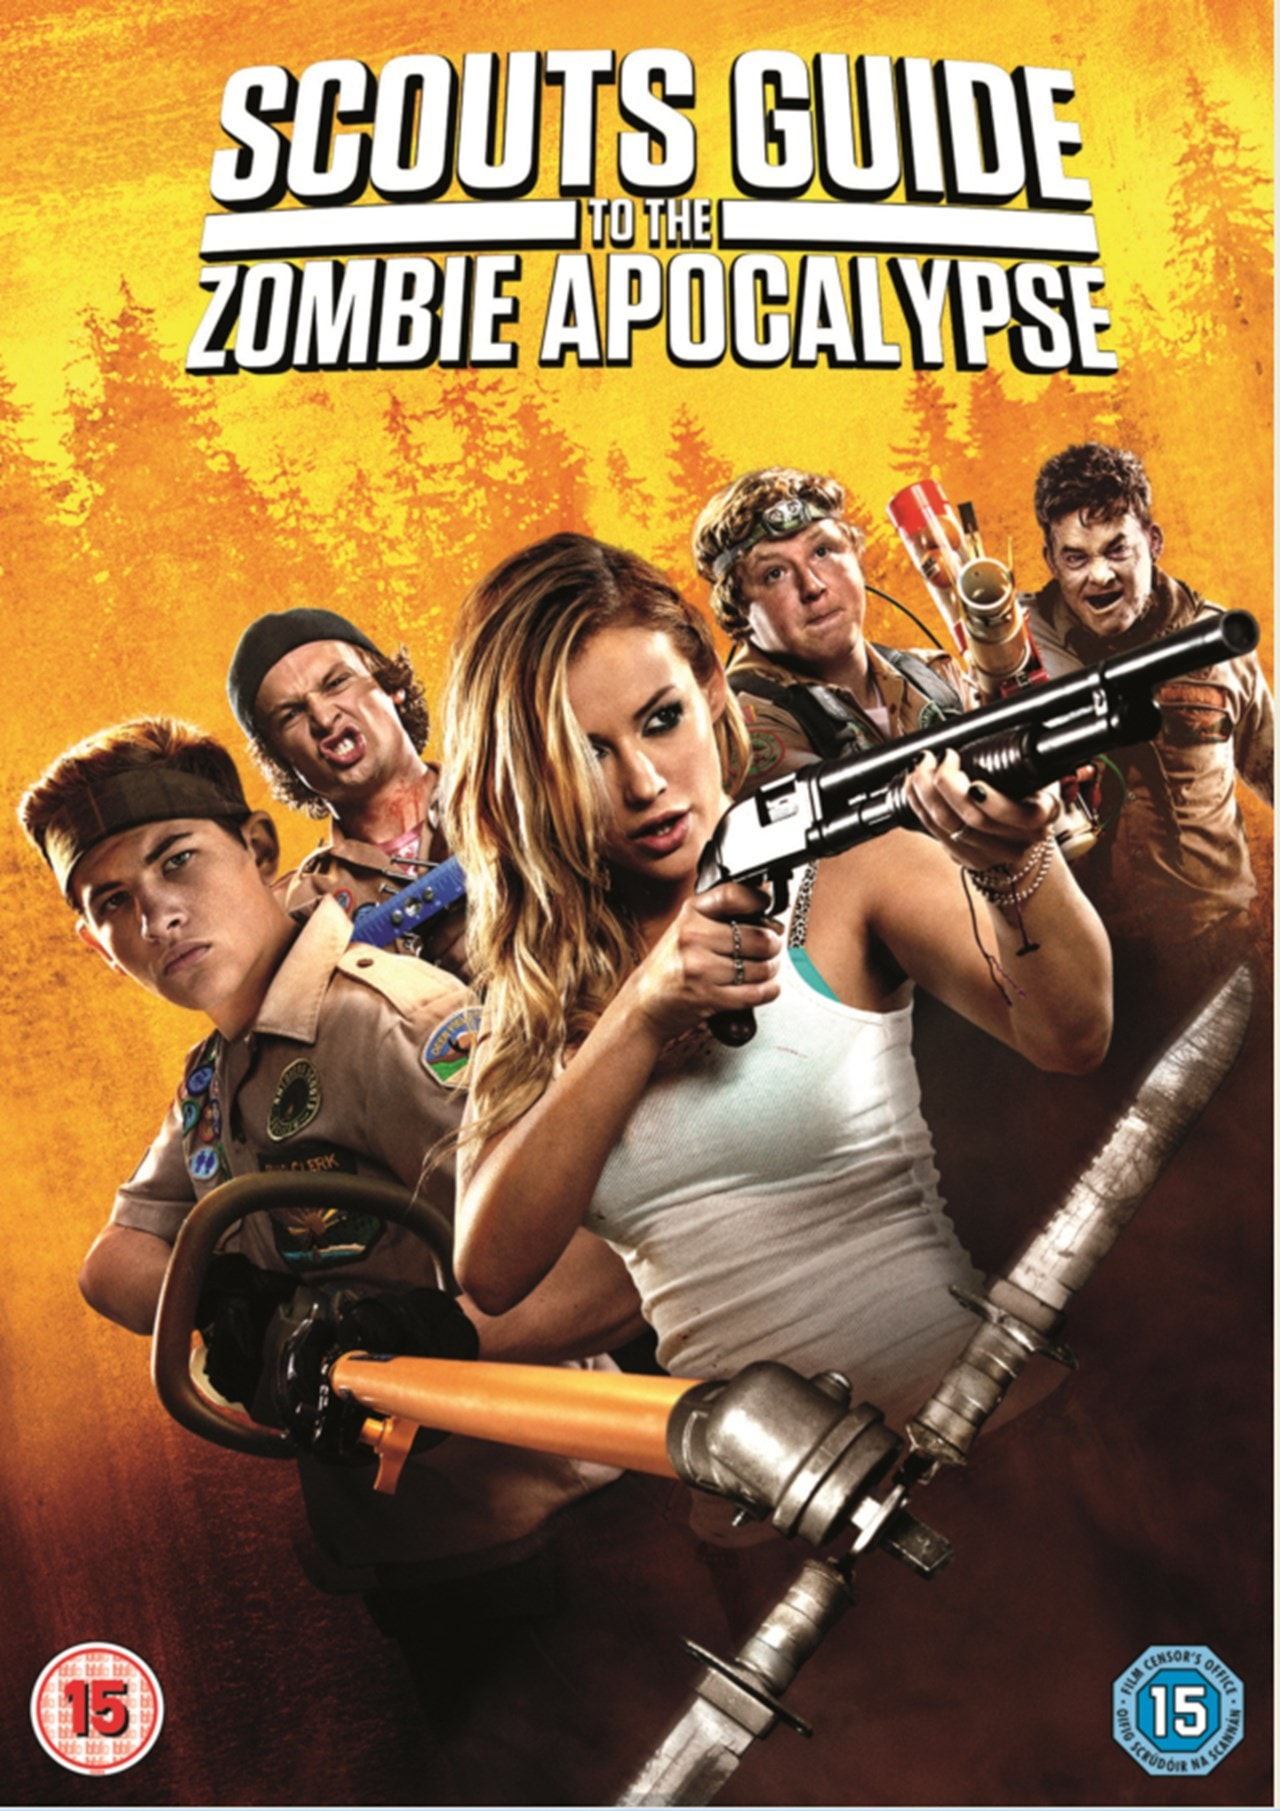 Scouts Guide to the Zombie Apocalypse - 1